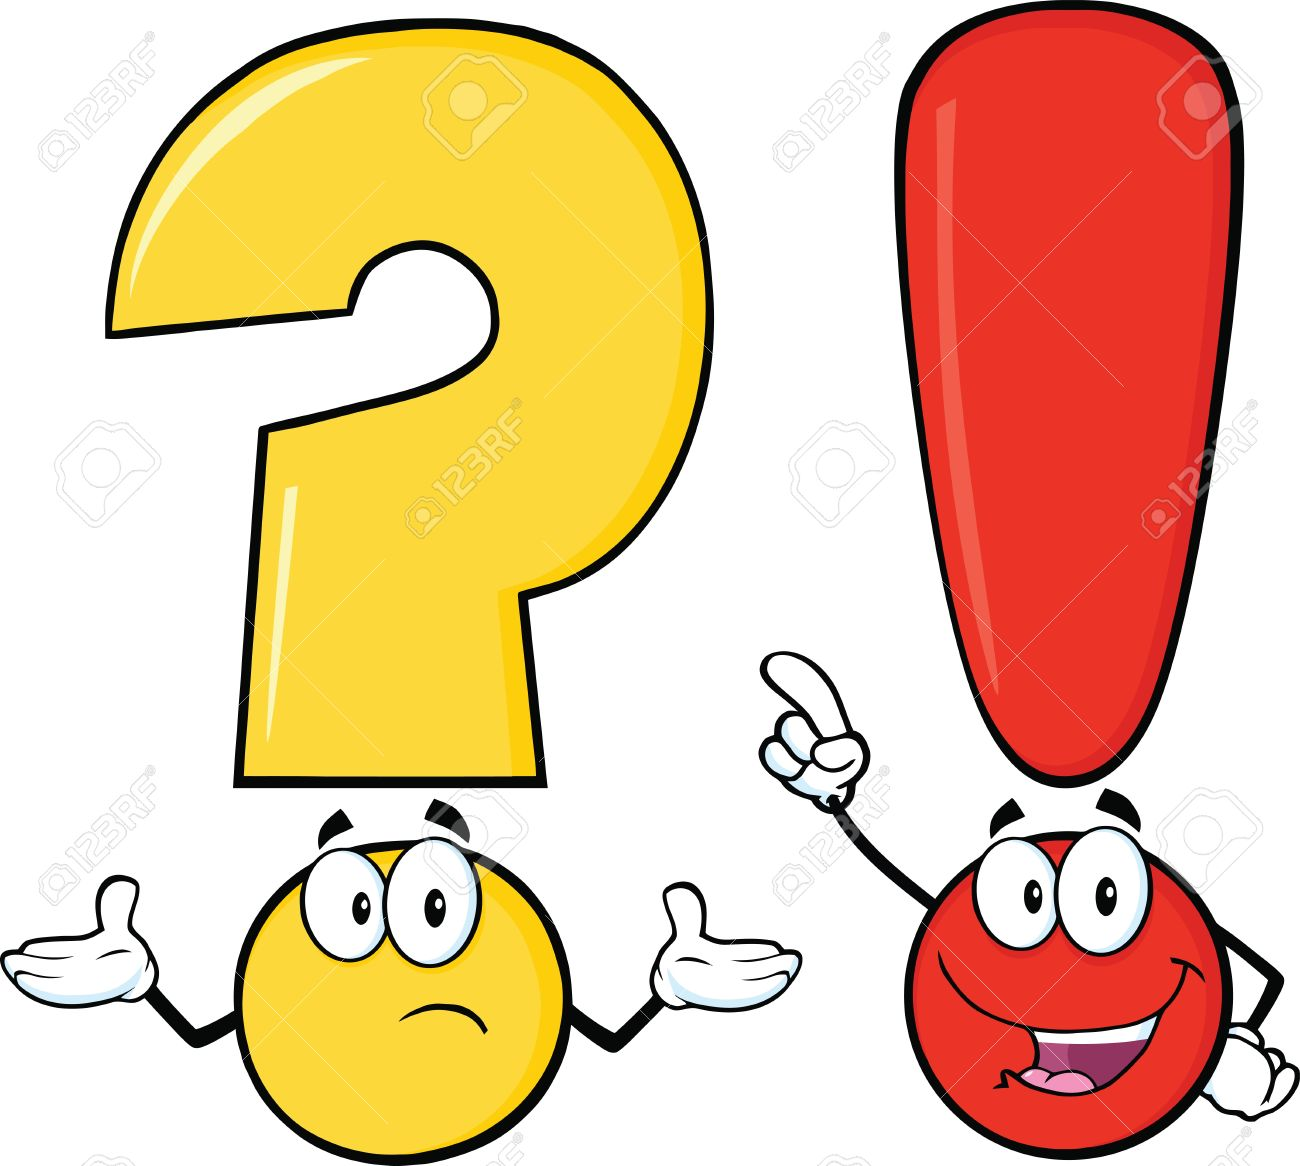 Question Mark And Exclamation Mark Cartoon Characters Royalty Free.